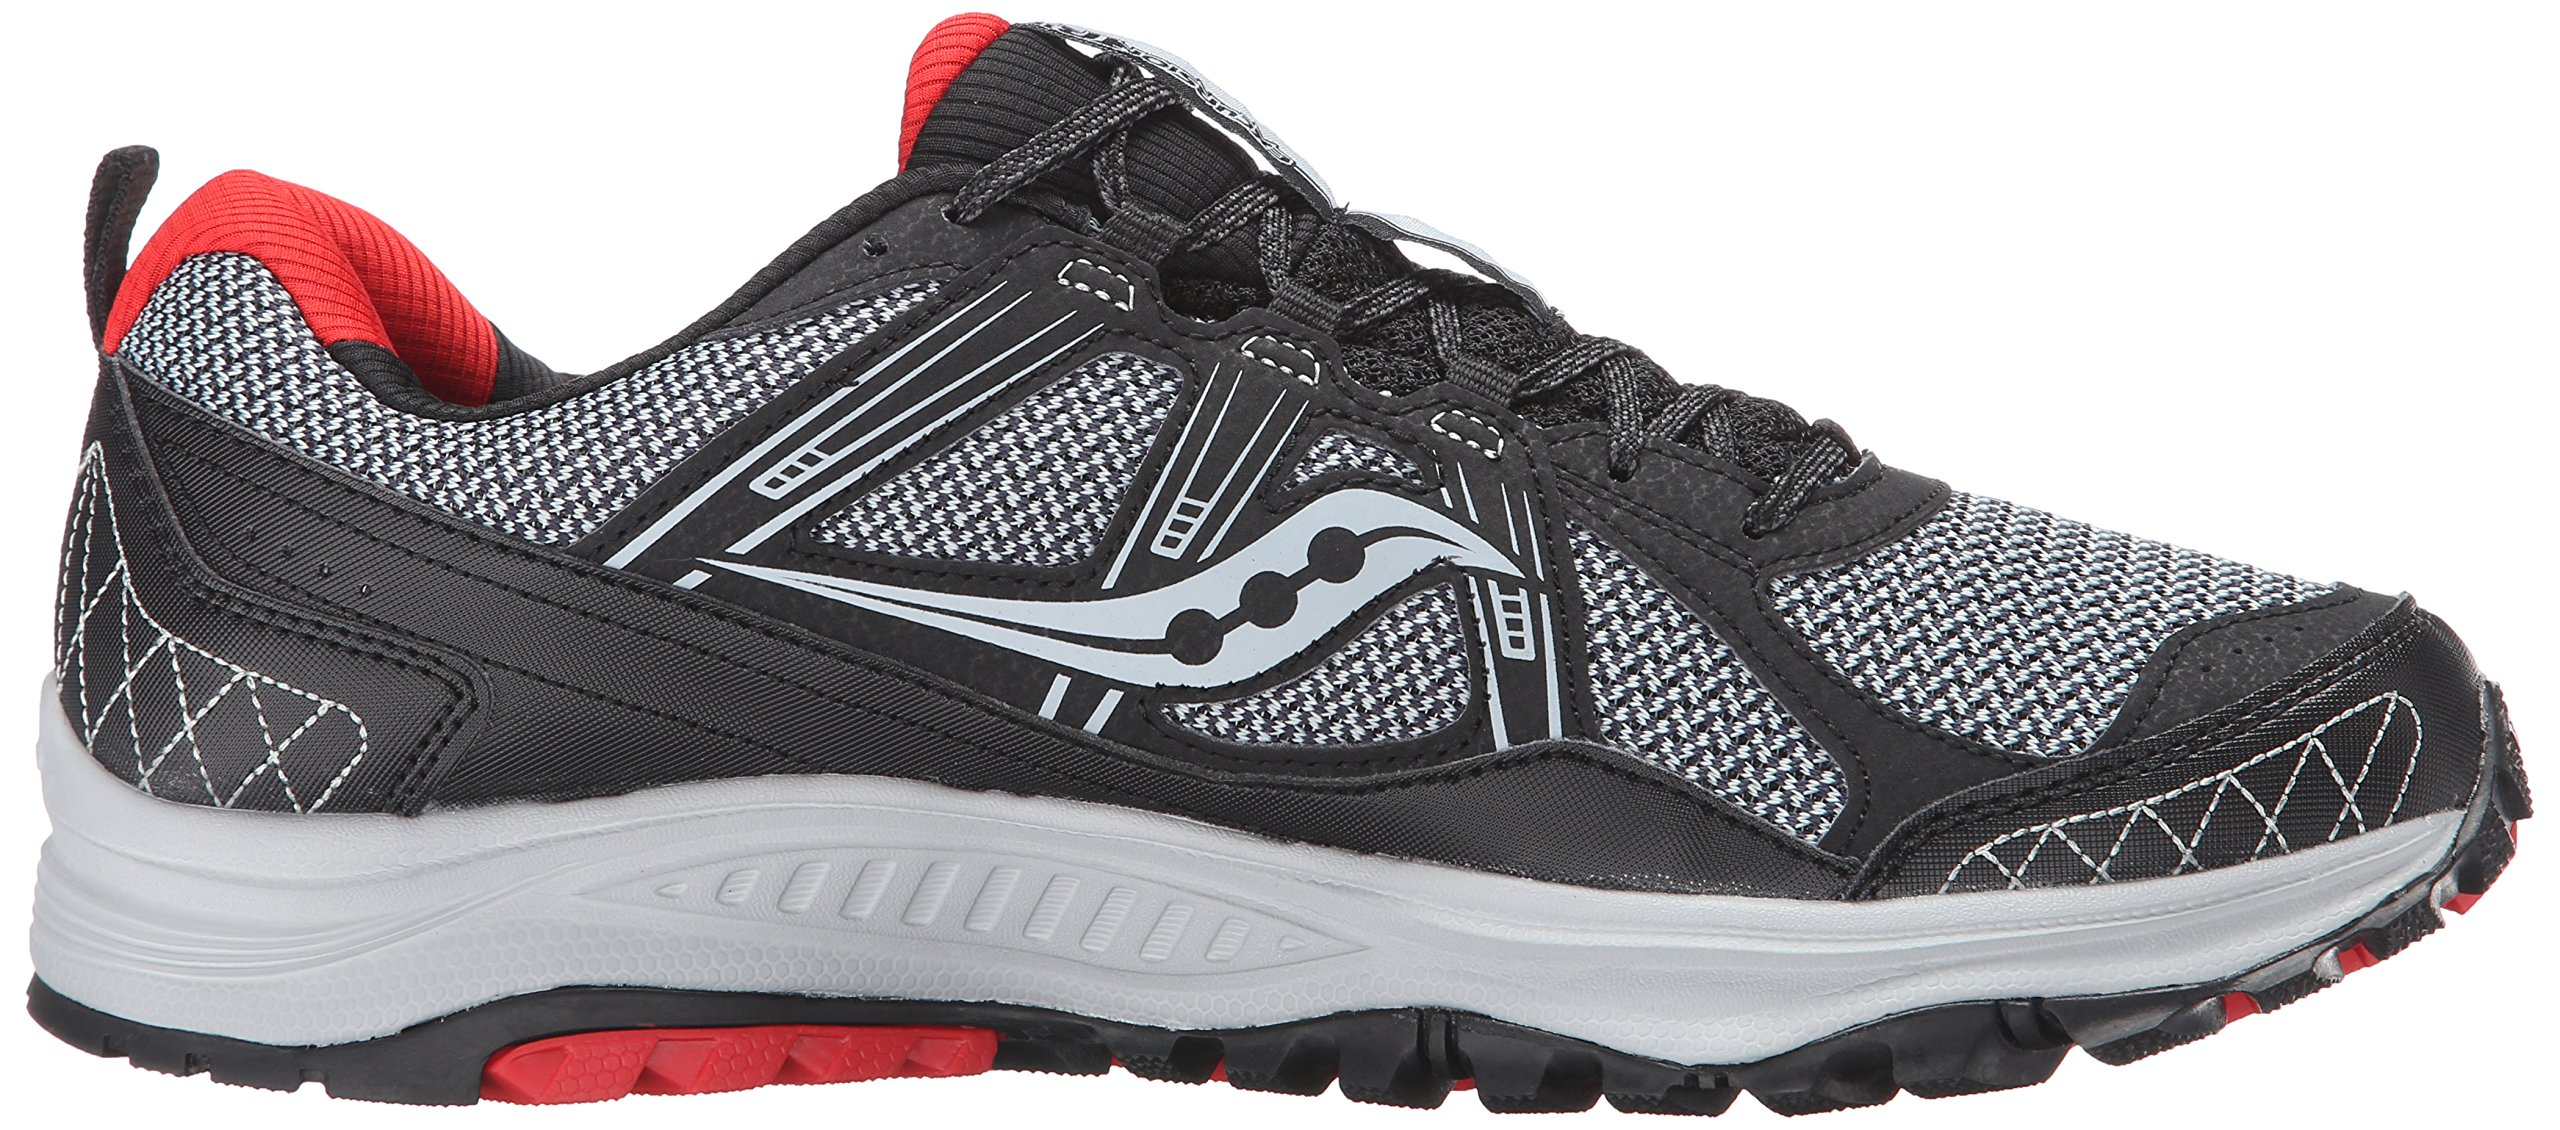 Saucony Men's Grid Excursion TR10 Running Shoe, Grey/Black/Red, 8 M US by Saucony (Image #11)